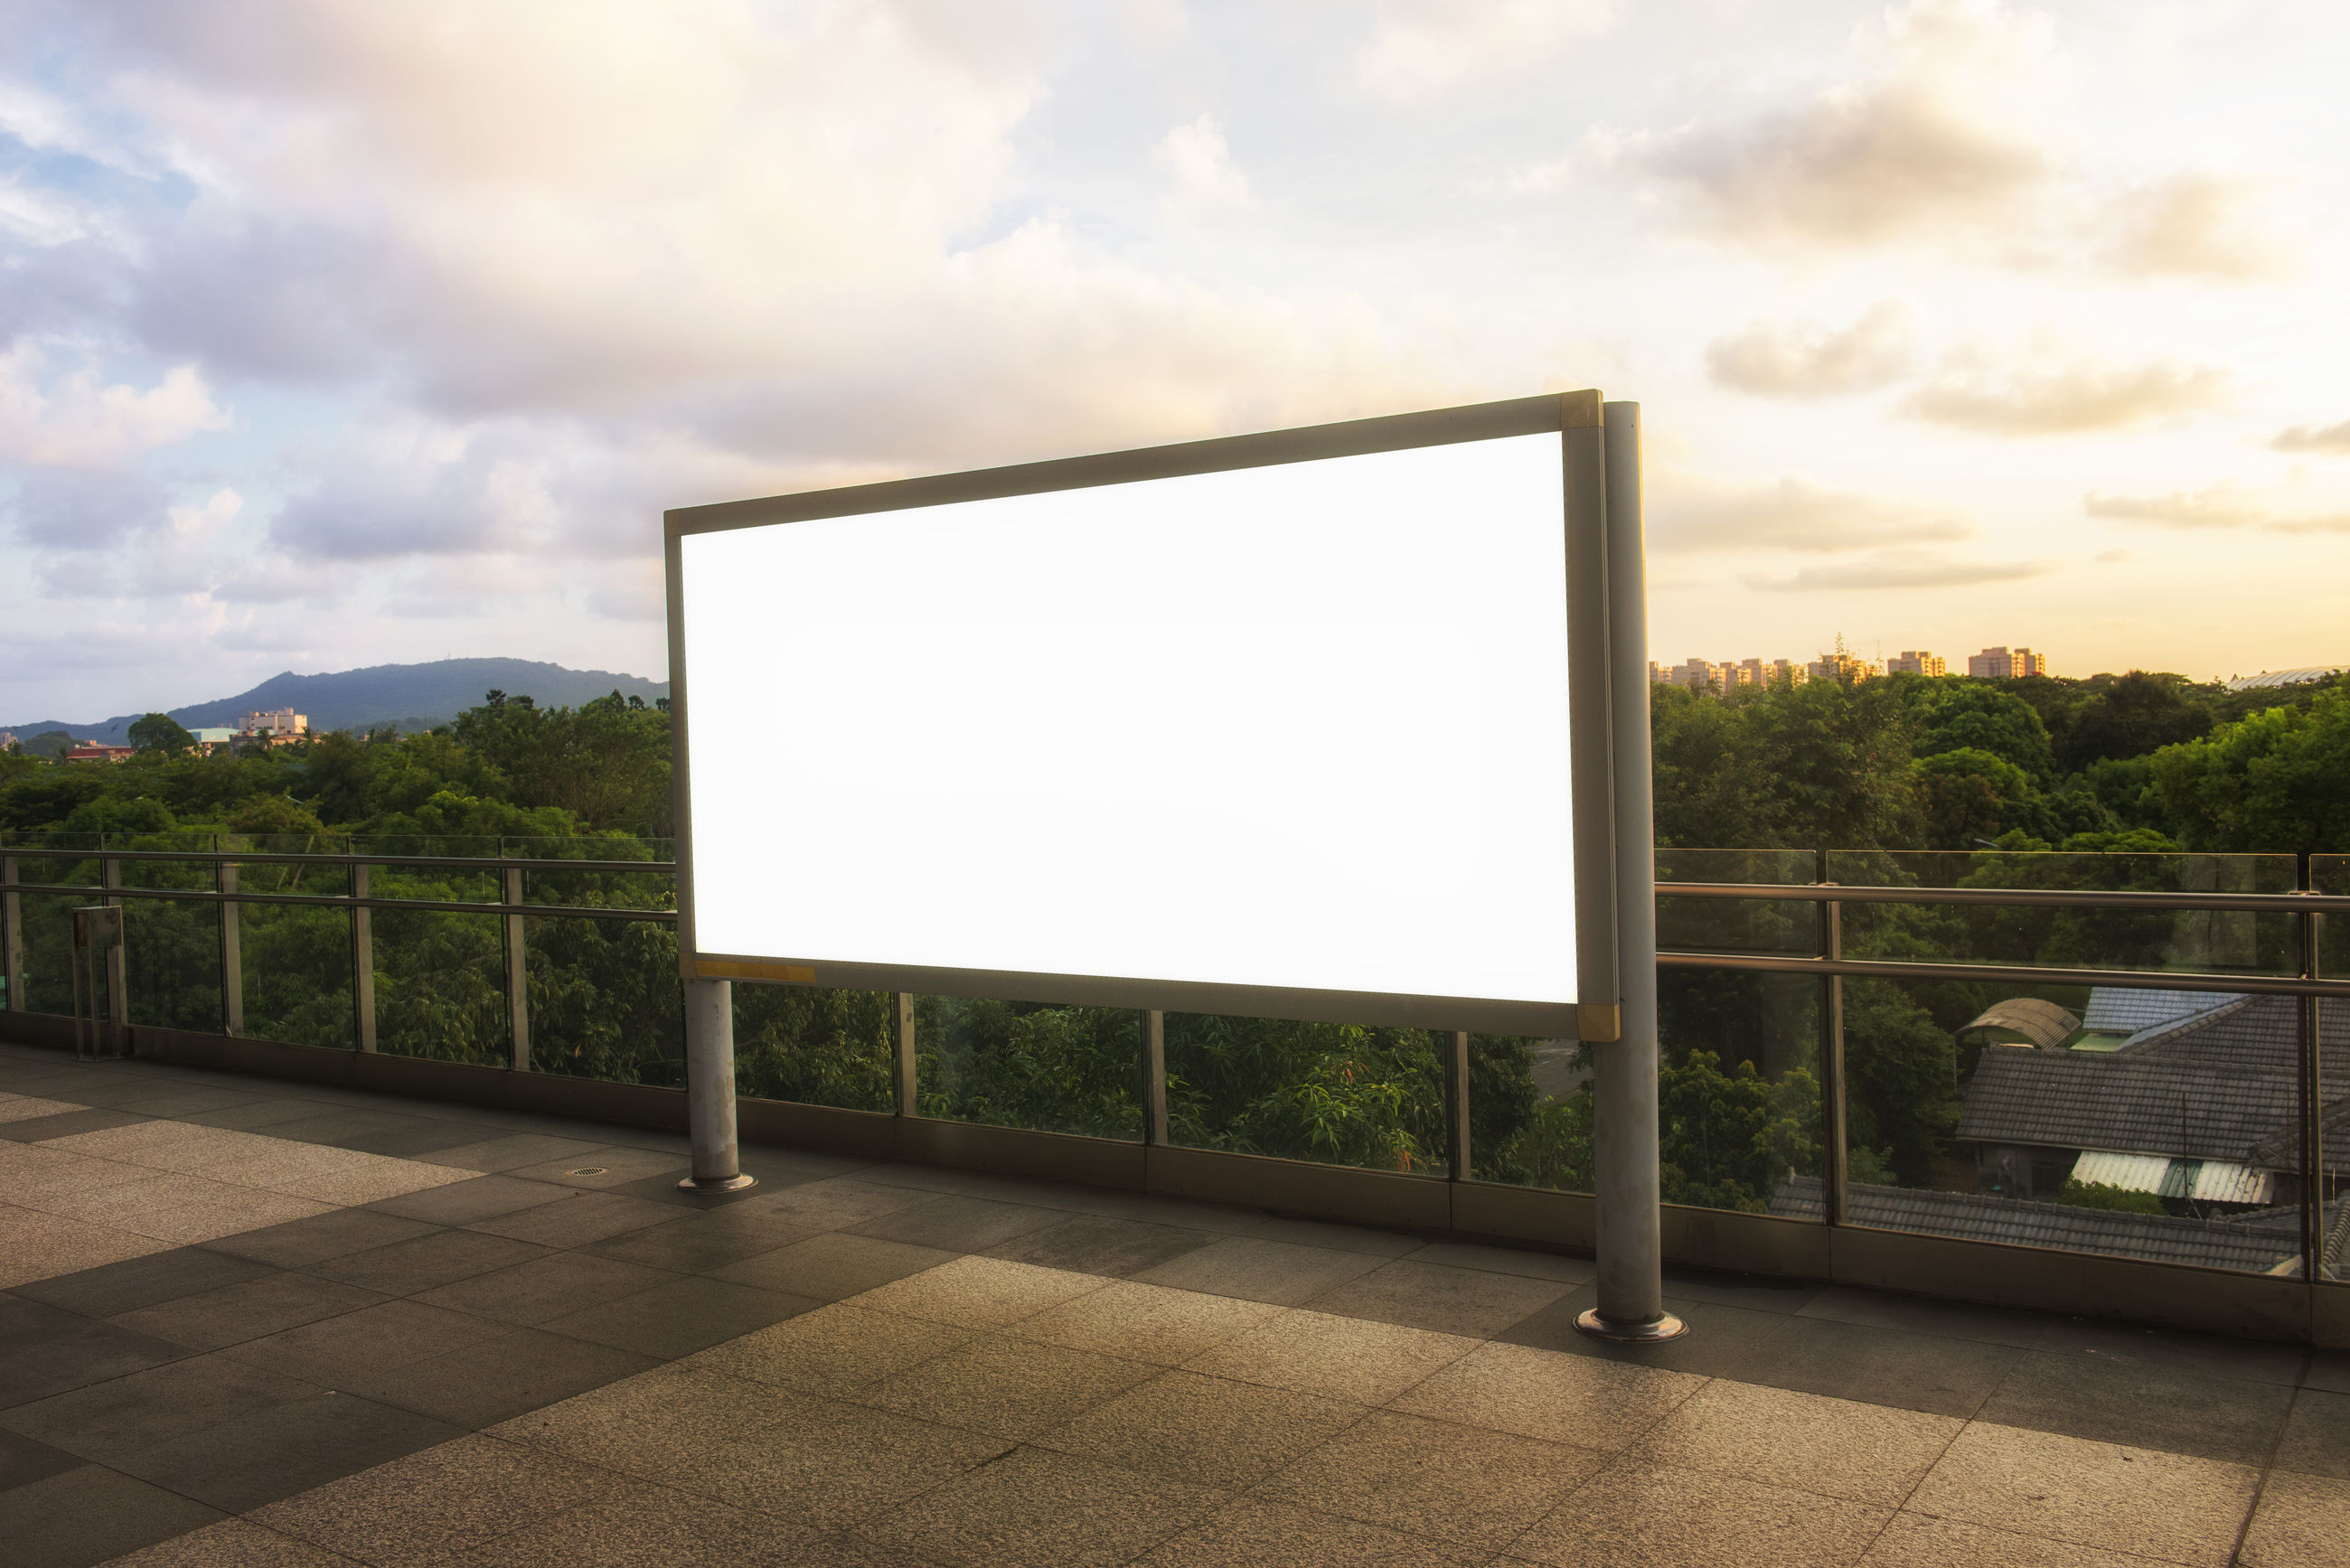 Blank billboard on footpath against cloudy sky during sunset